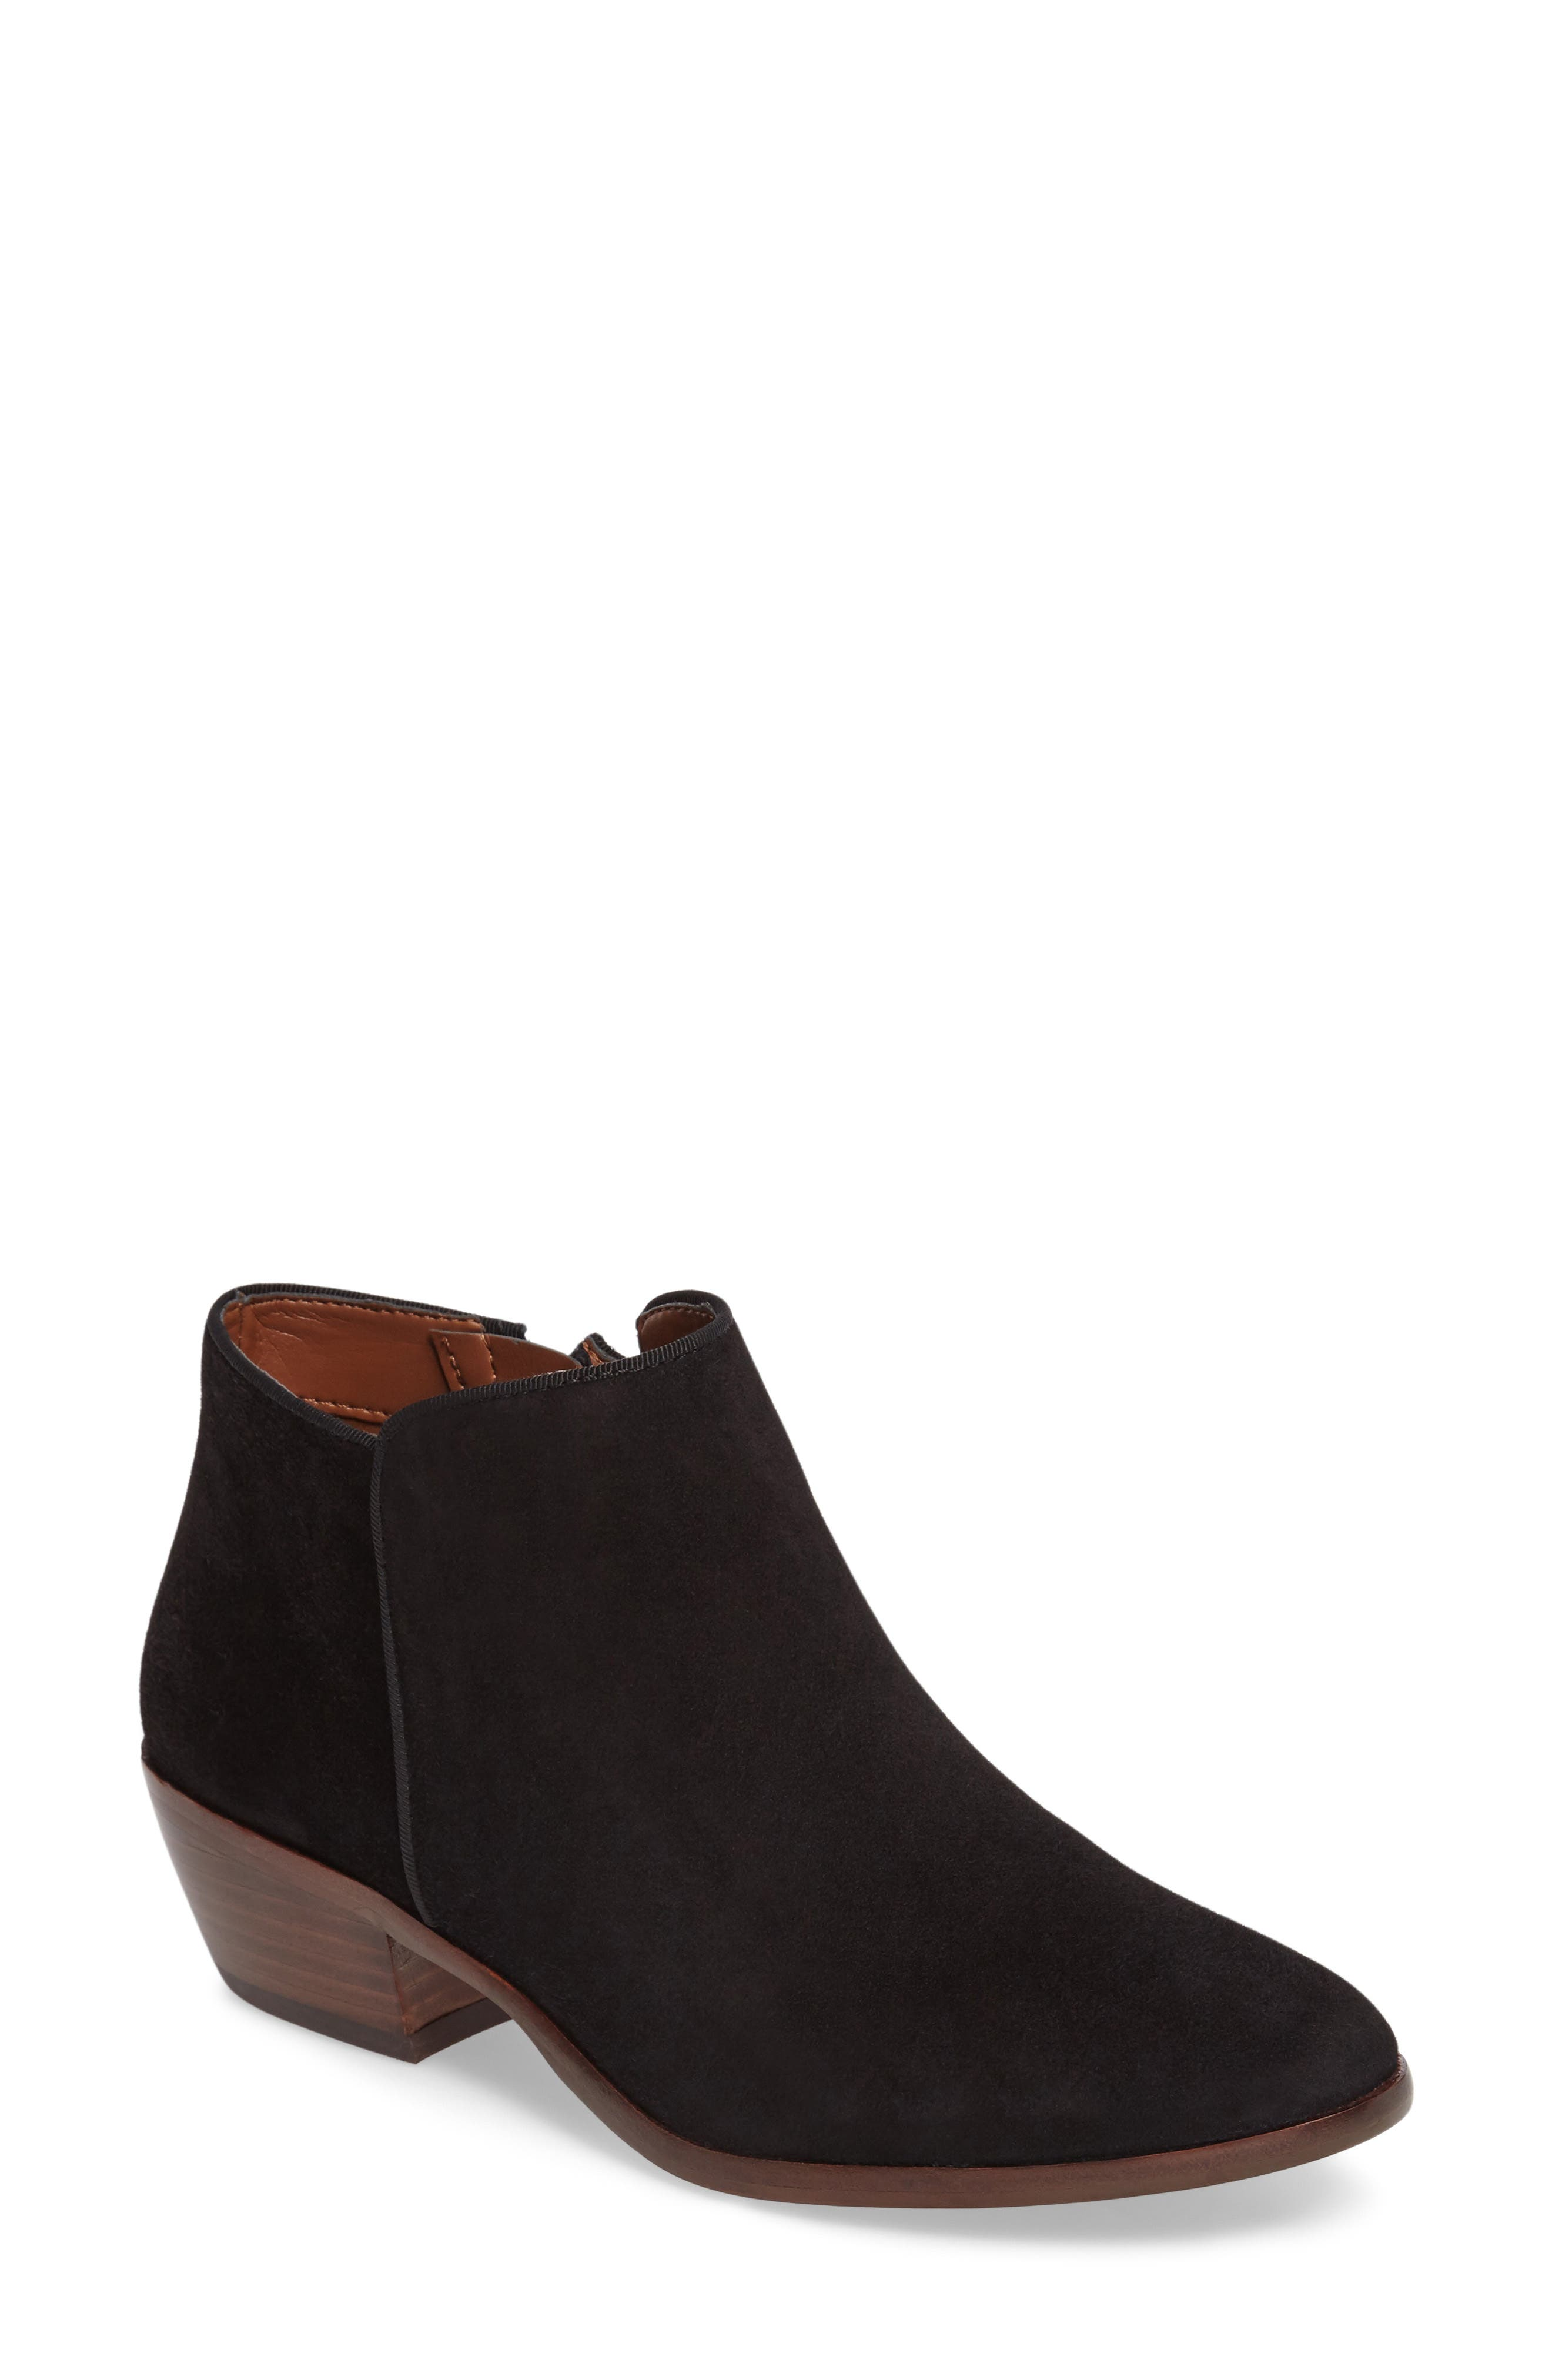 'Petty' Chelsea Boot, Main, color, BLACK SUEDE